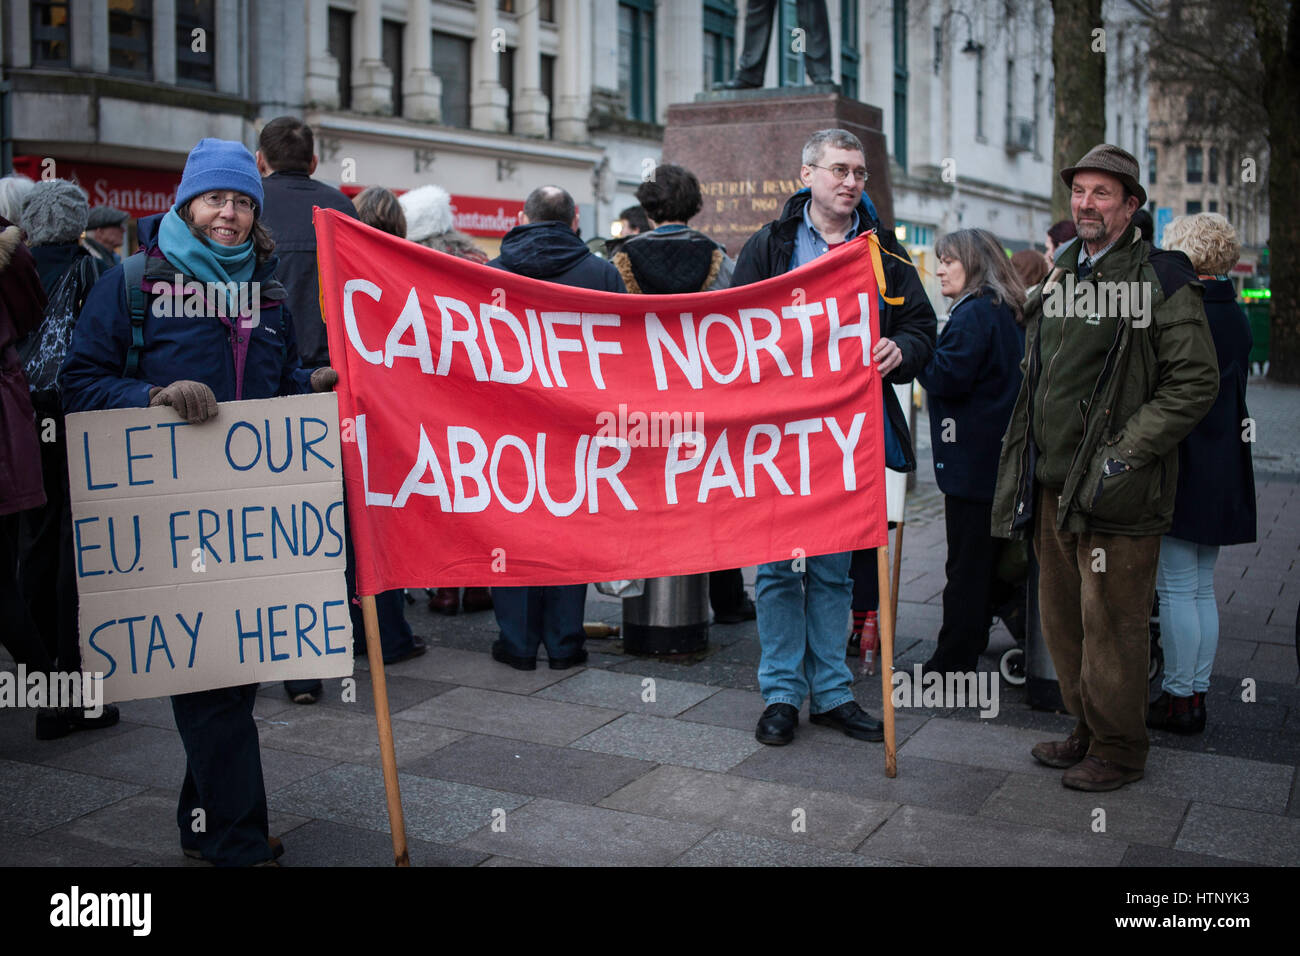 Cardiff, UK. 13th March, 2017. An emergency protest was held to defend EU Citizens' Right to Remain in the UK - Stock Image